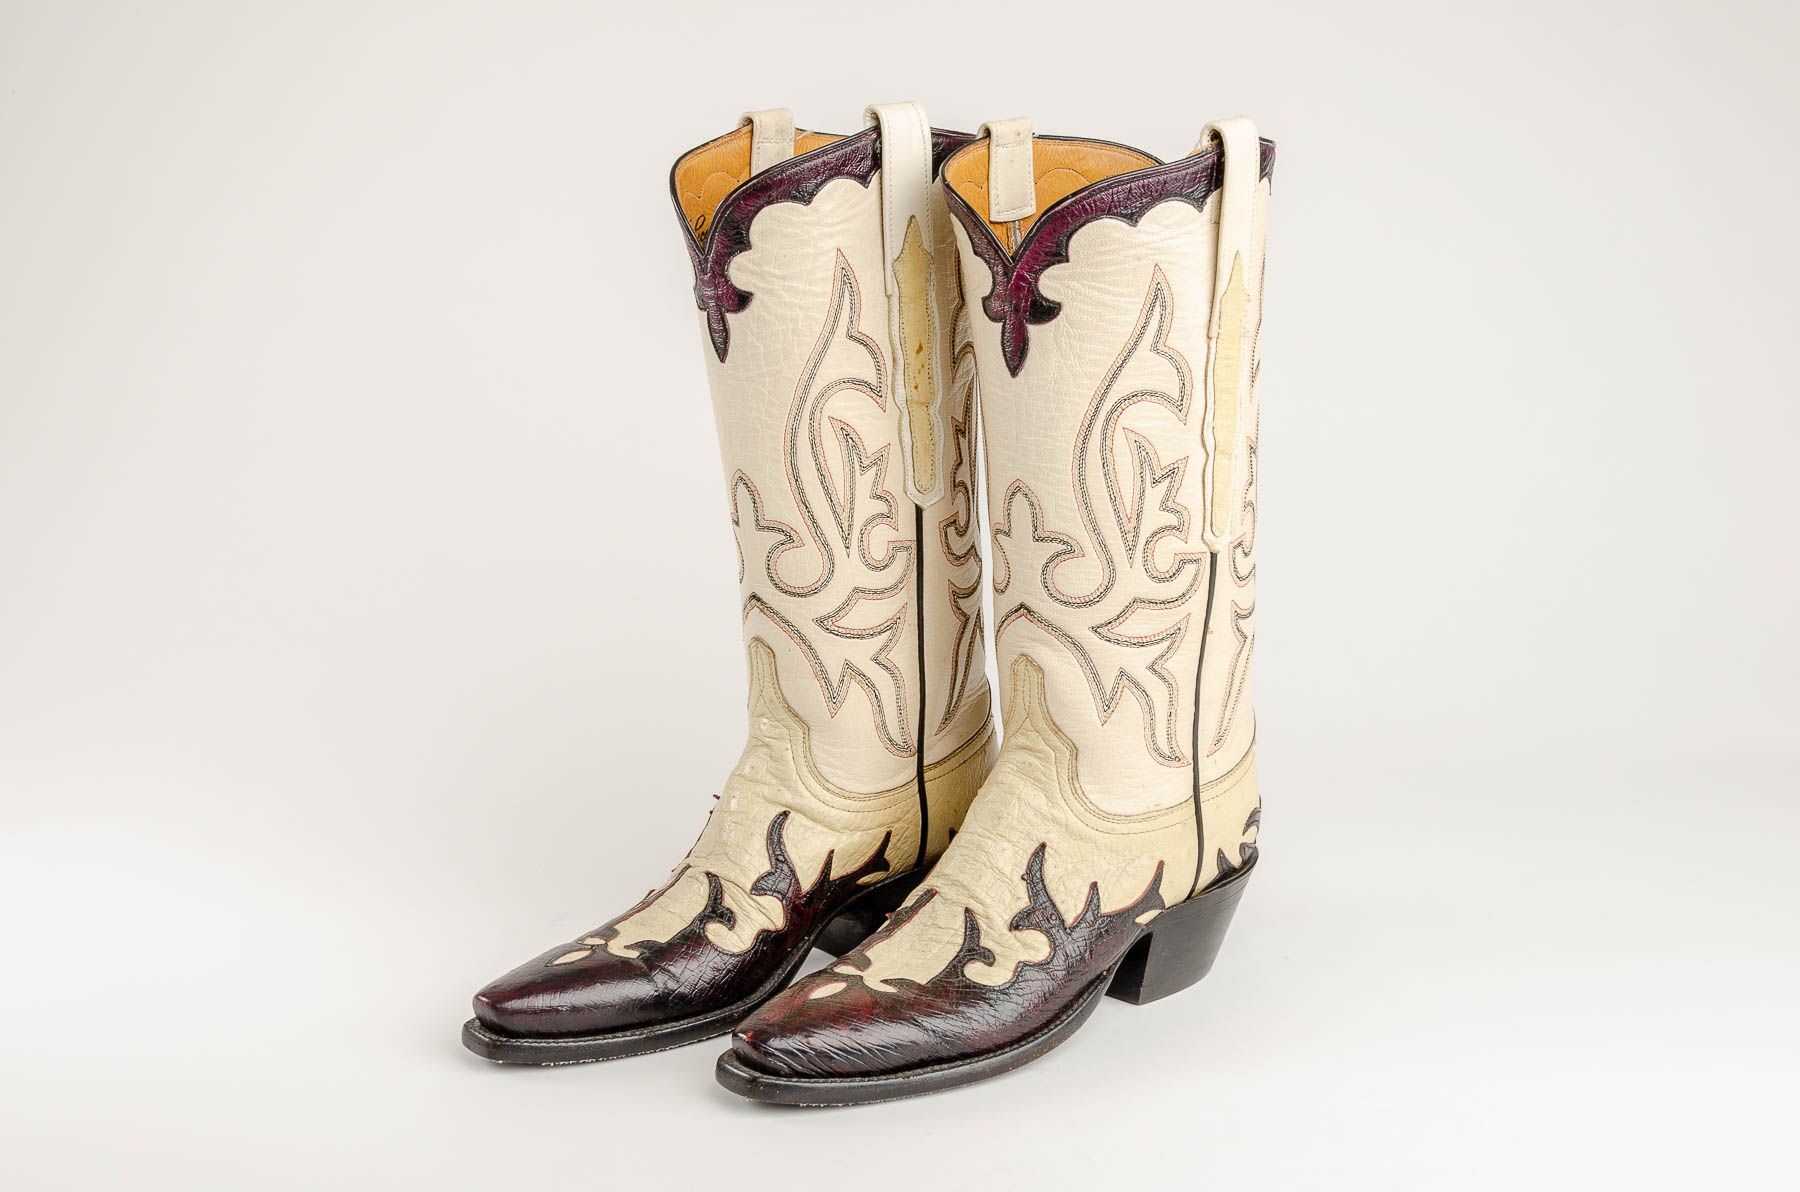 8750b55c4342 Lucchese Ostrich Boots - Double Take of Santa Fe